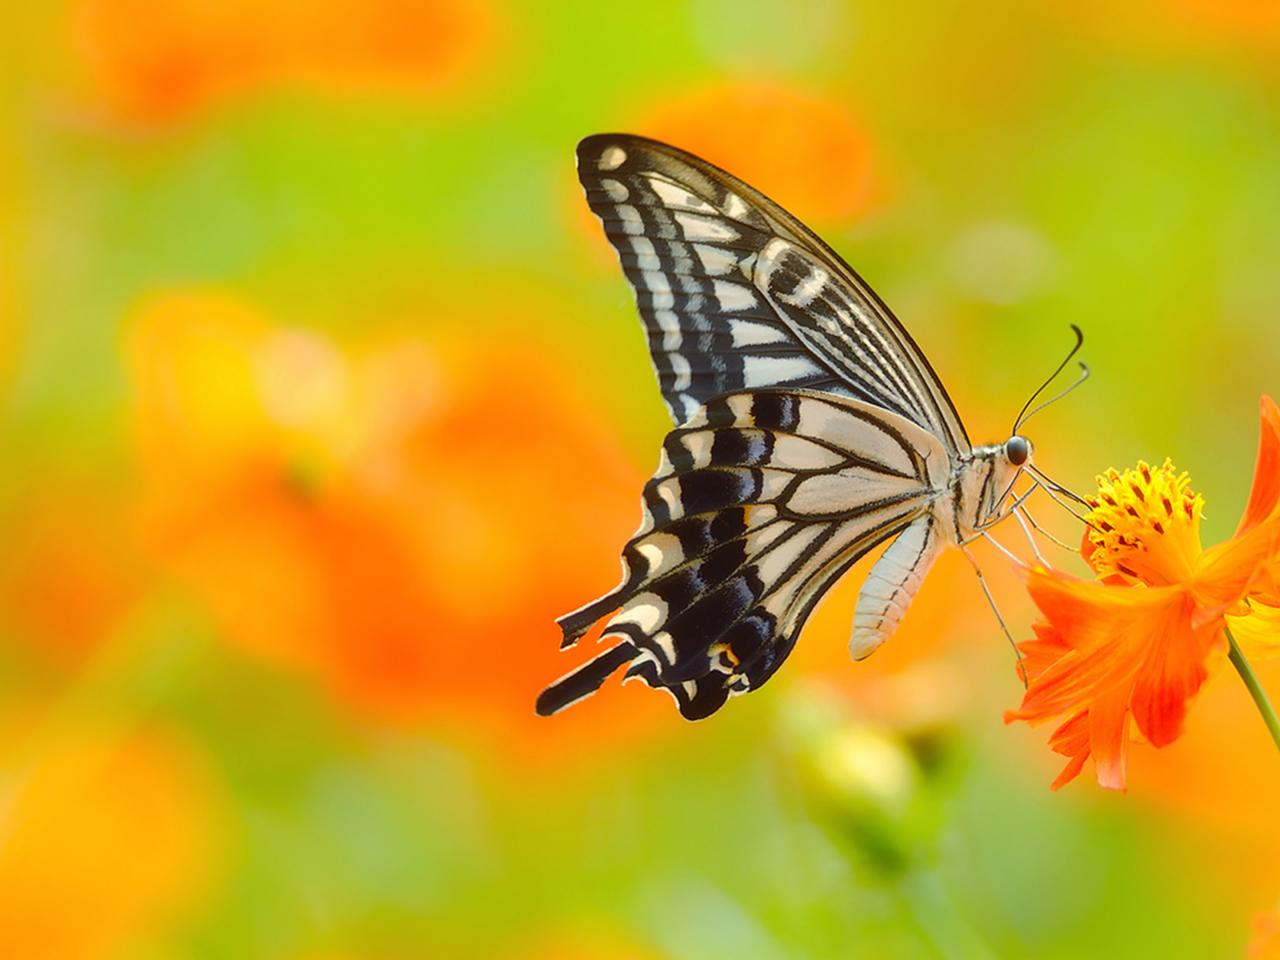 3d Motivational Wallpapers Picture Of Butterfly On Flower In 4k Ultra Hd Resolution